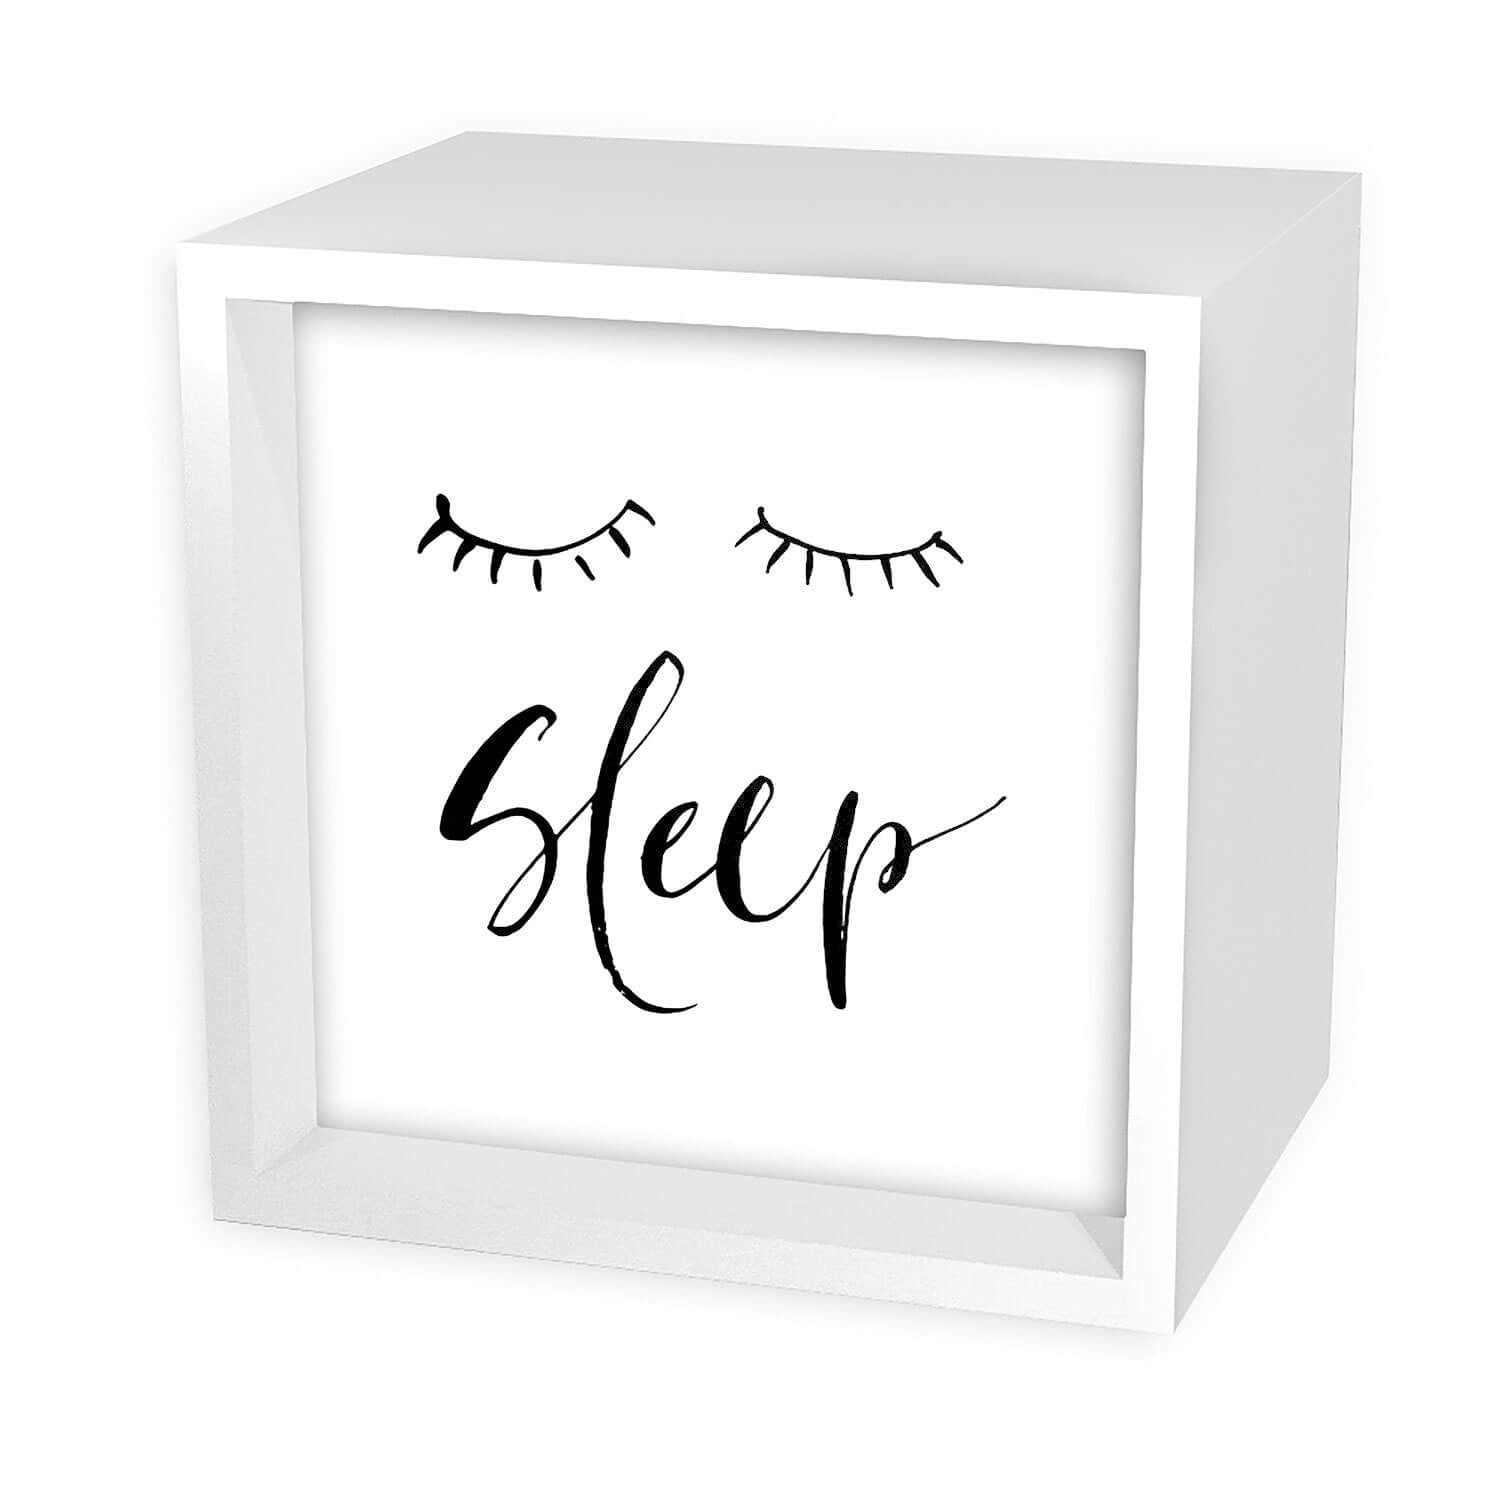 Sleep Light Box